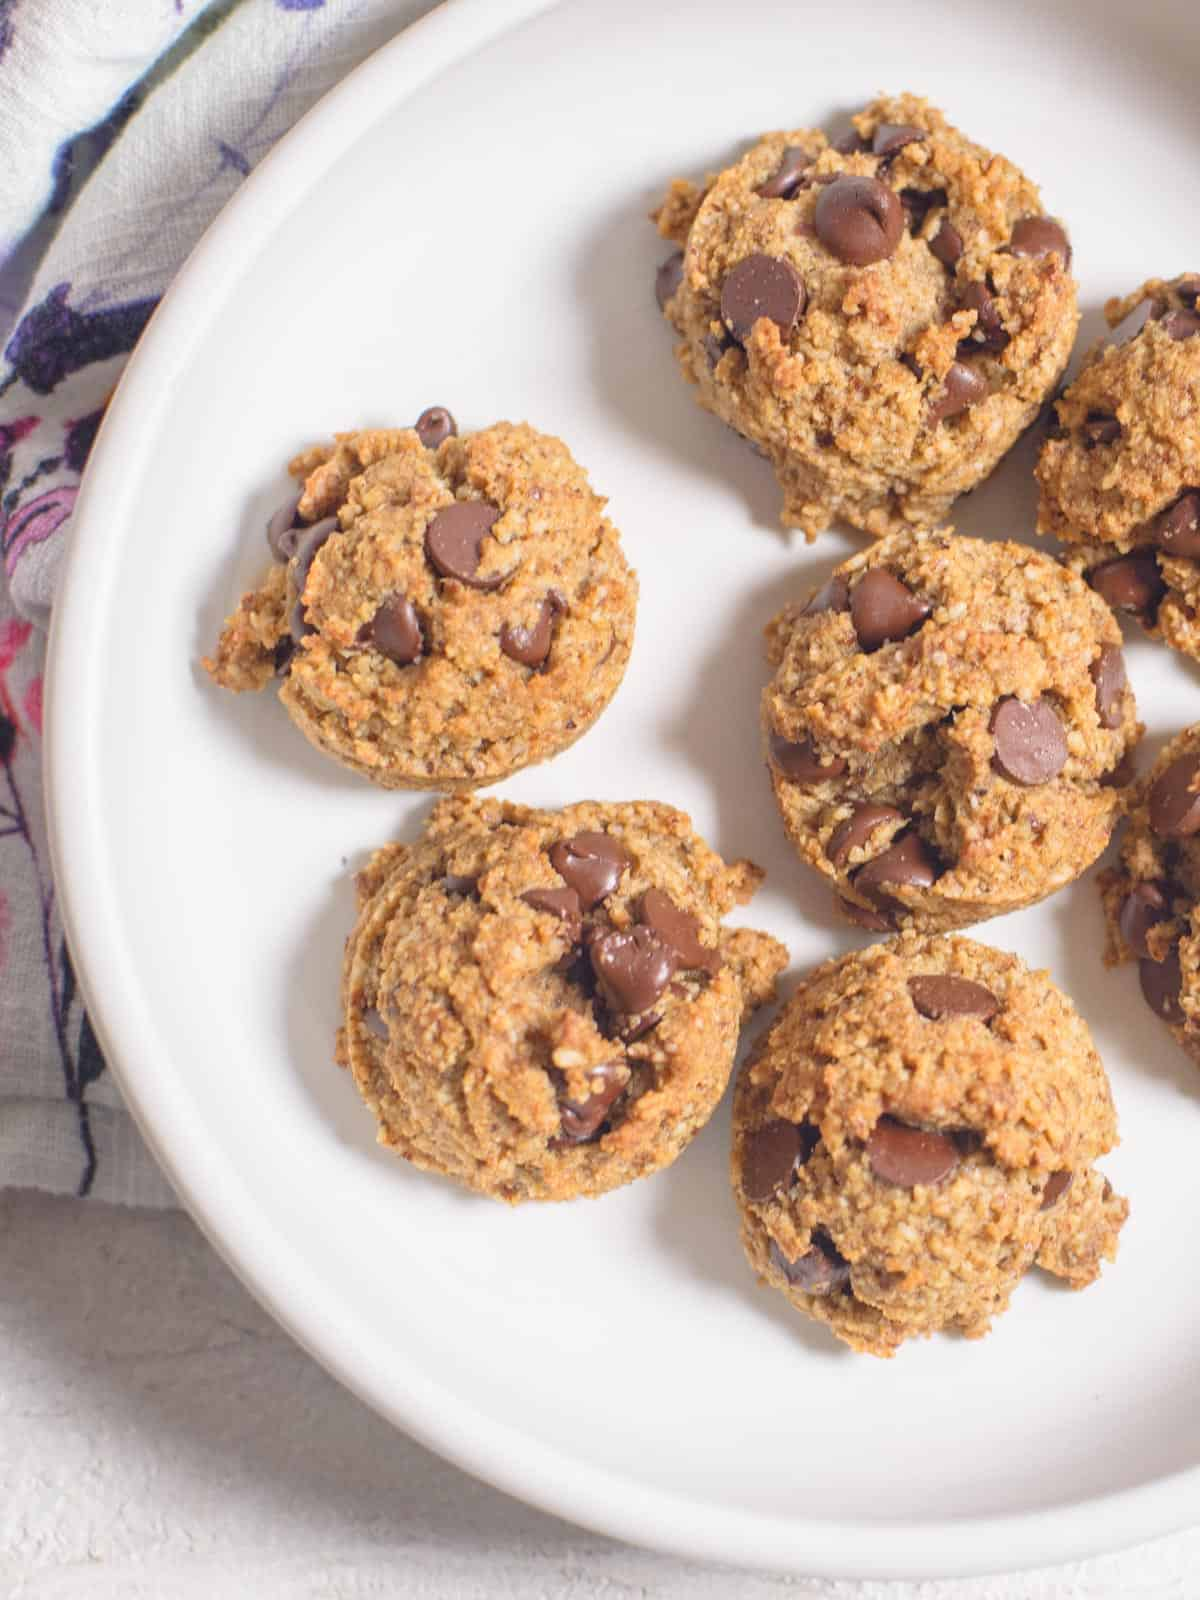 low carb chocolate chip cookies made with hazelnut flour on a white plate